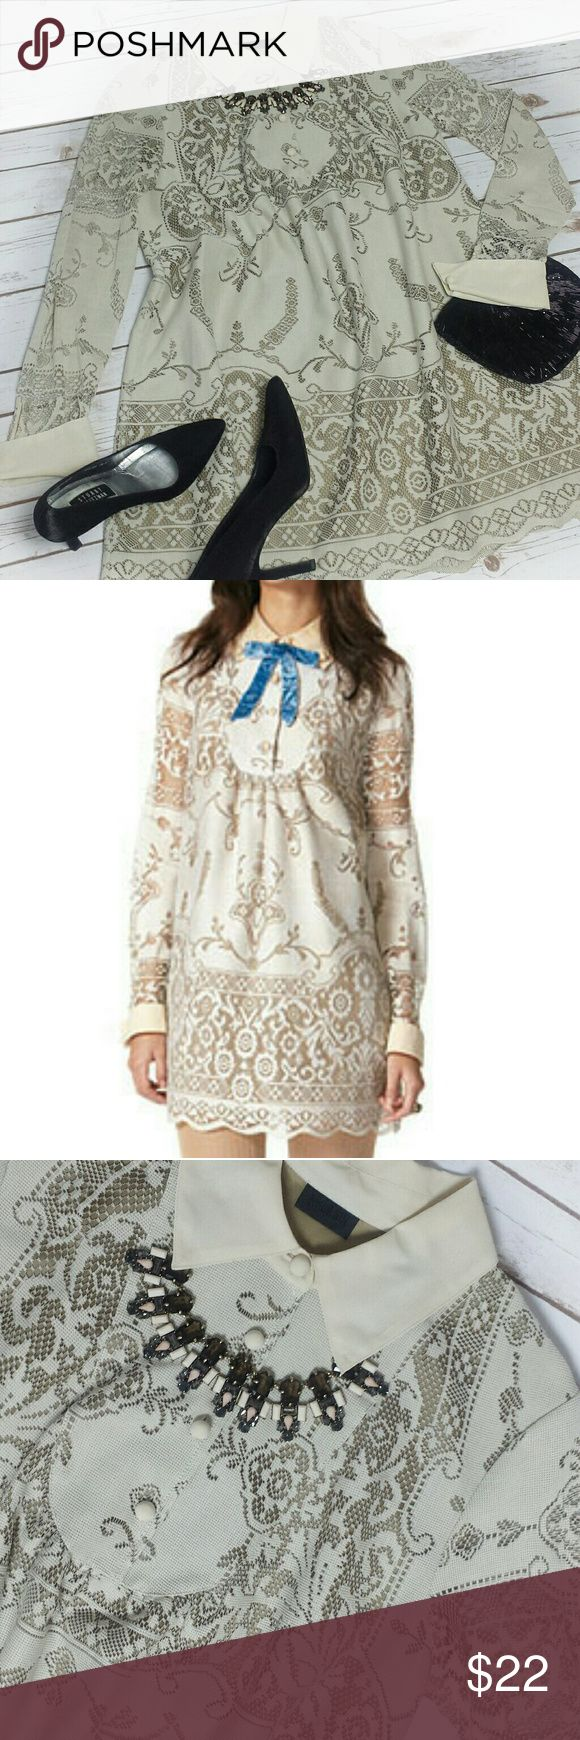 "Anna Sui for Target ""Blair"" Baby doll Tunic Dress This stunning dress sold out instantly at Target and now needs a new home. It is in beautiful condition and can be dressed up with heels or down with cute flats.  B- 21.5"" A-26"" L-35.5"" Anna Sui Dresses Long Sleeve"